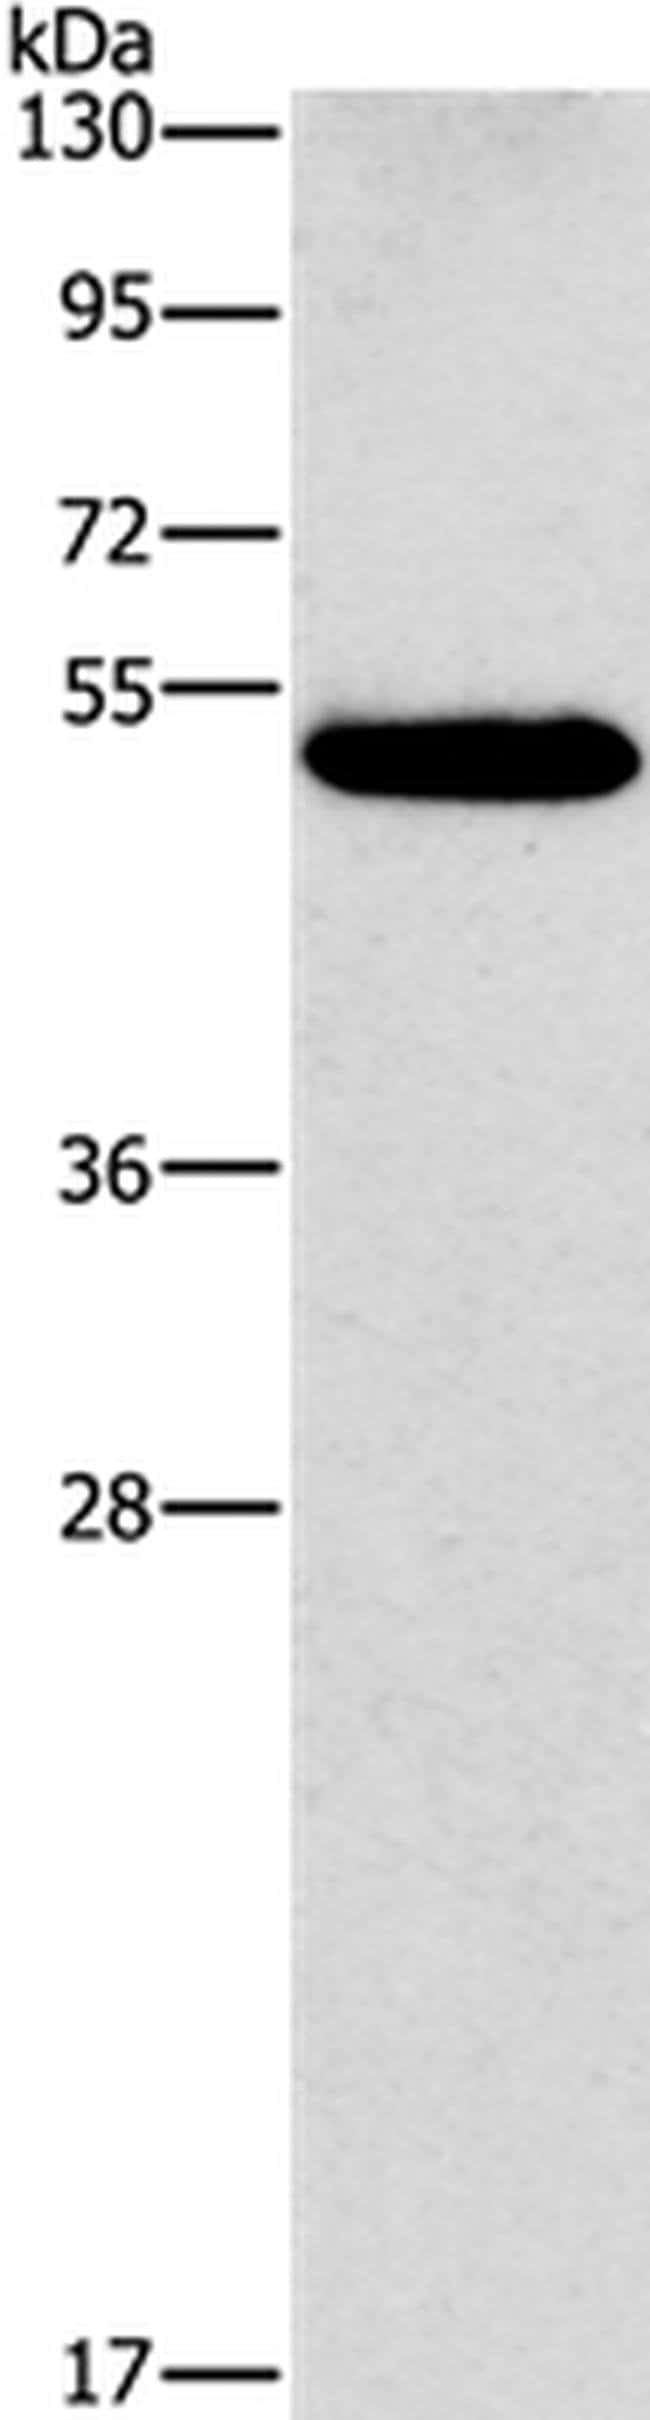 CALCRL Rabbit anti-Human, Polyclonal, Invitrogen 100 µL; Unconjugated